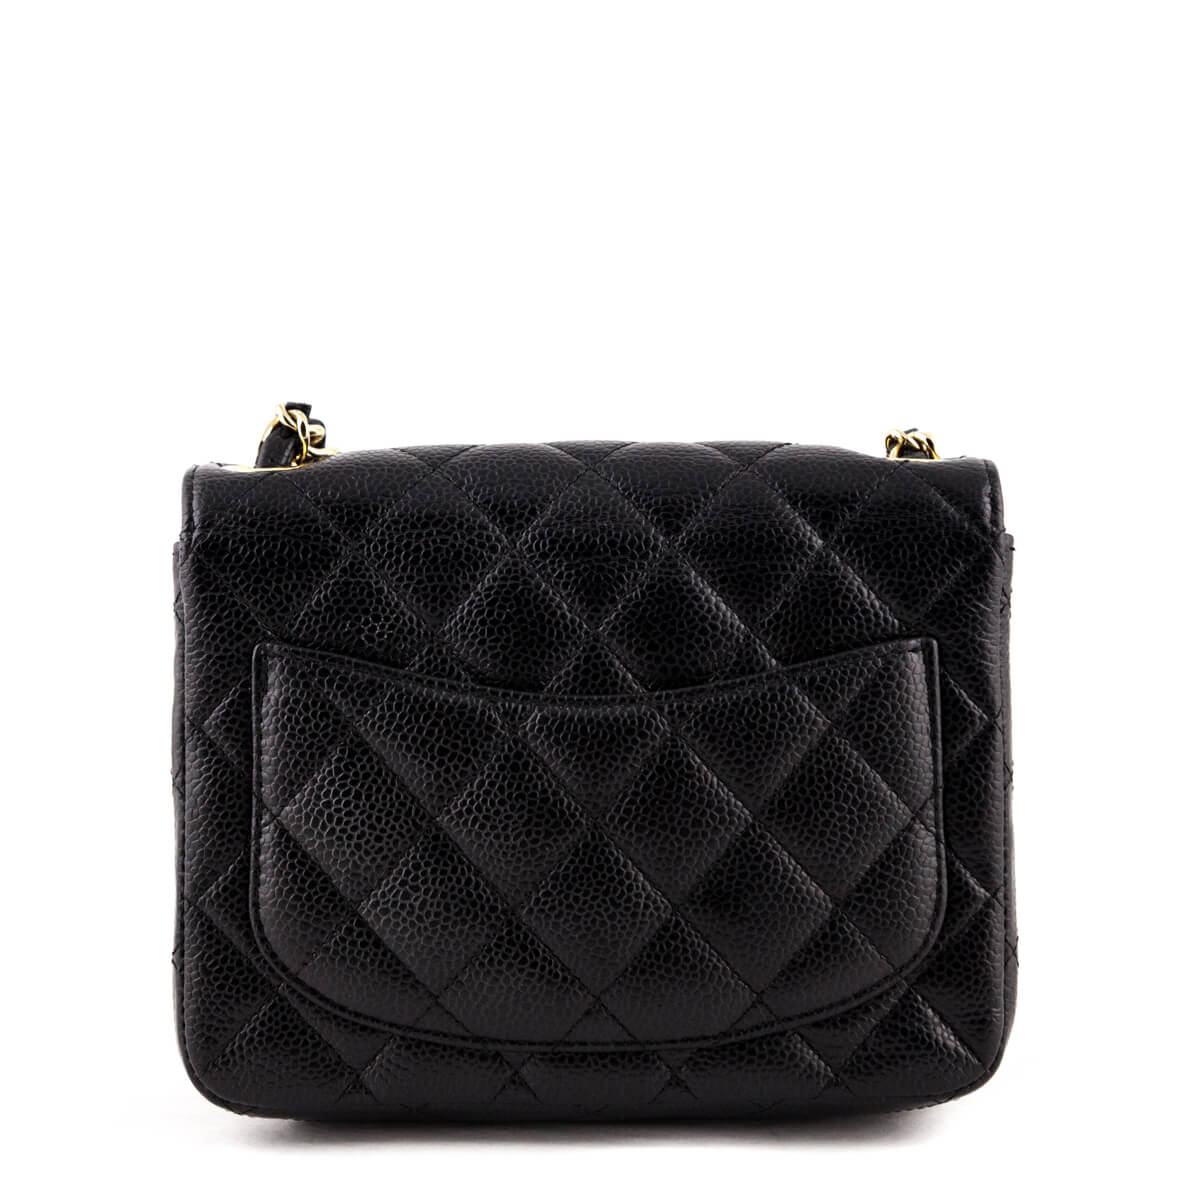 a11450646c73 ... Chanel Black Quilted Caviar Mini Square Flap Bag - LOVE that BAG -  Preowned Authentic Designer ...